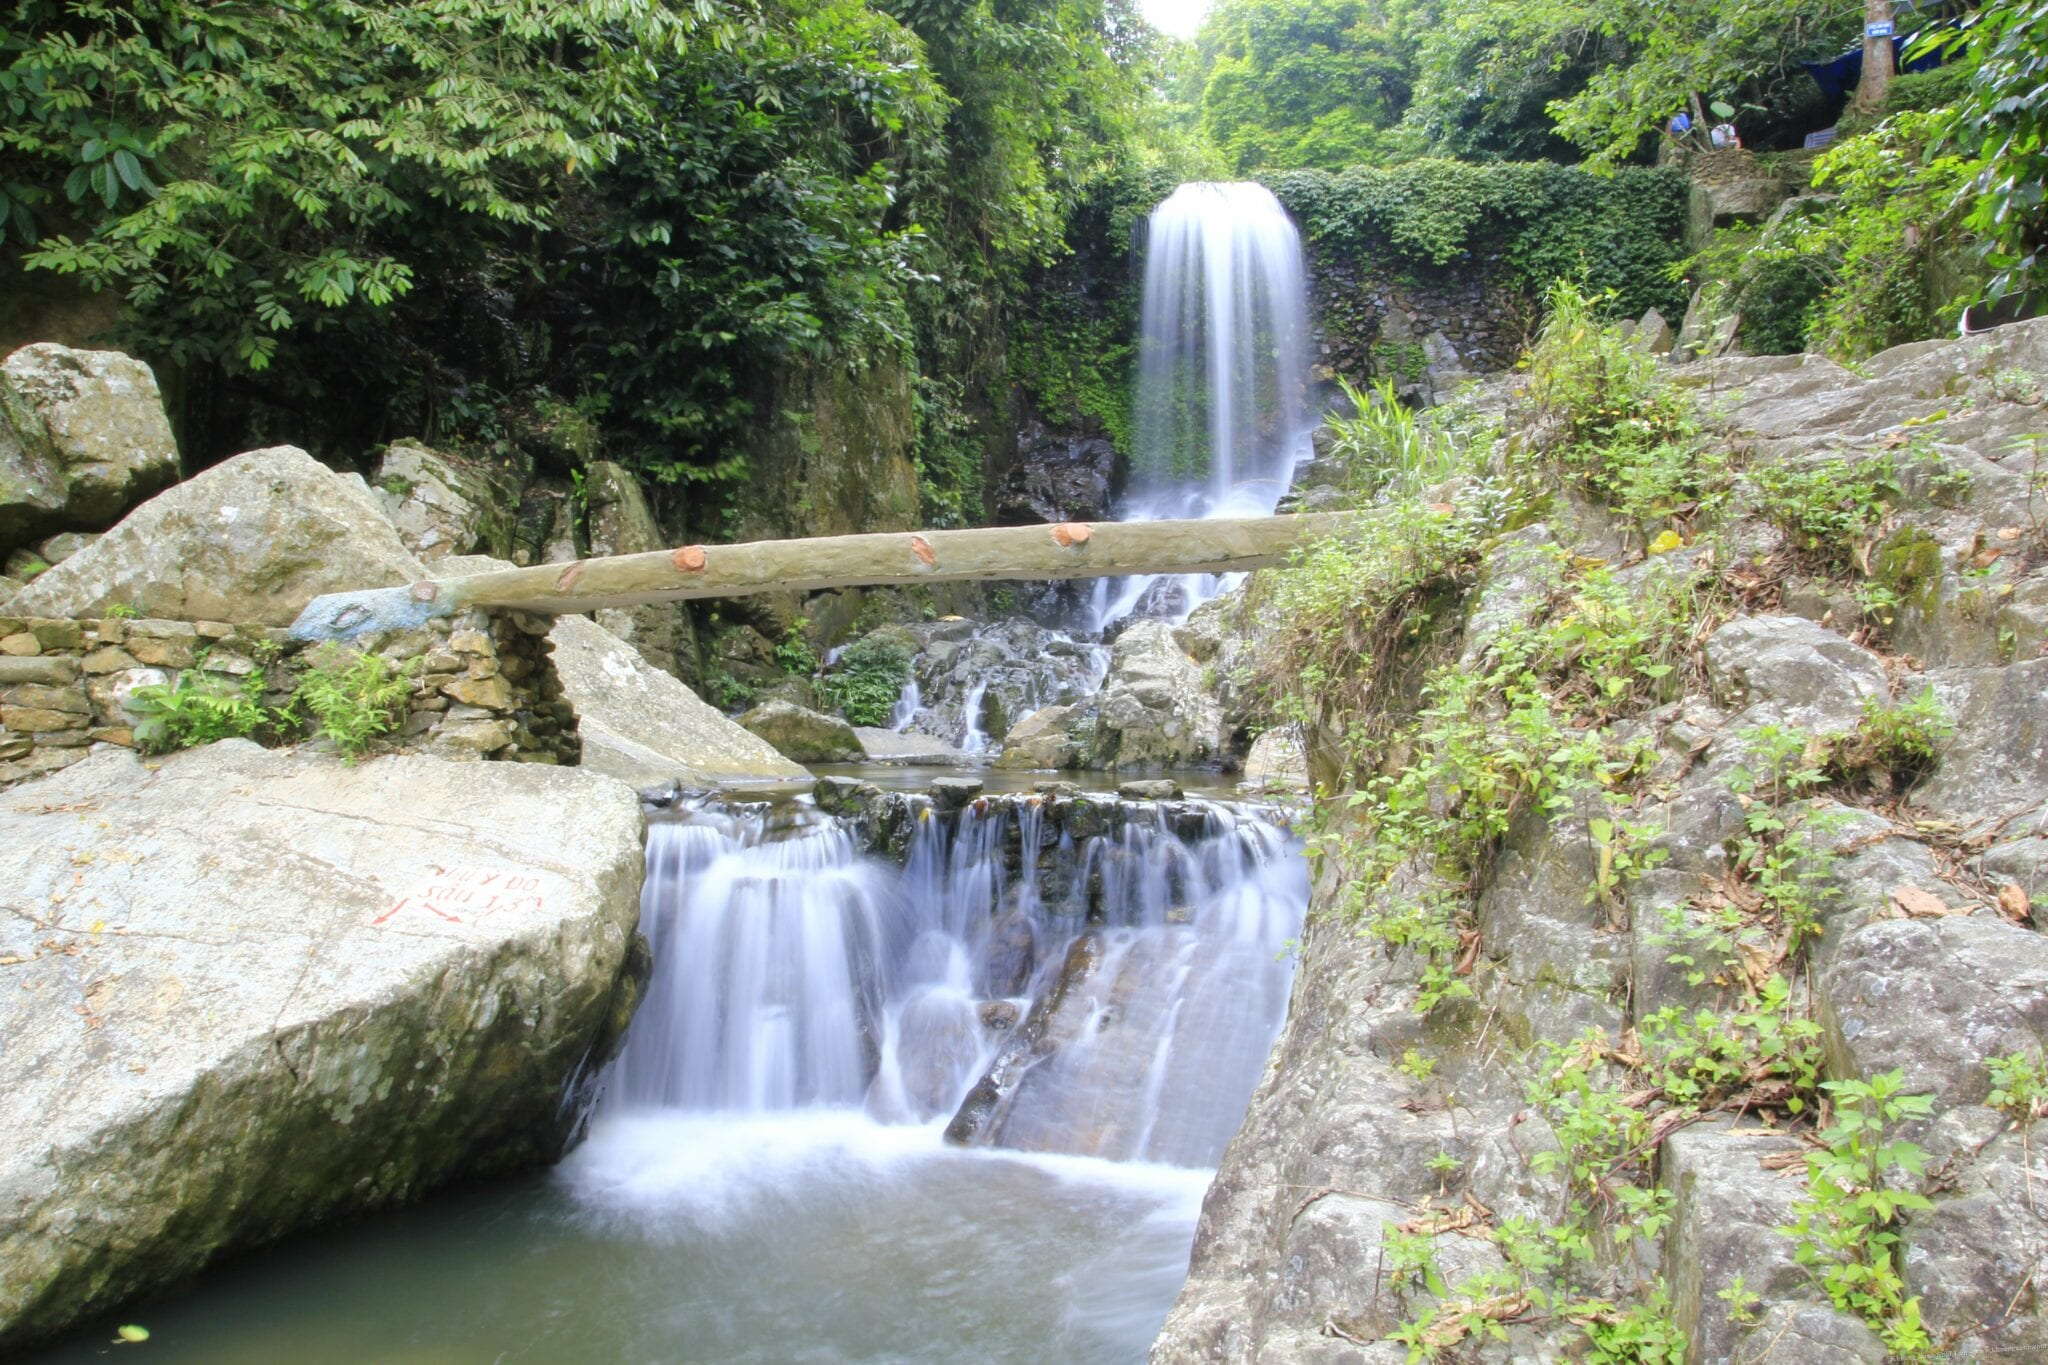 Image of a waterfall in Ba Vi National Park Vietnam